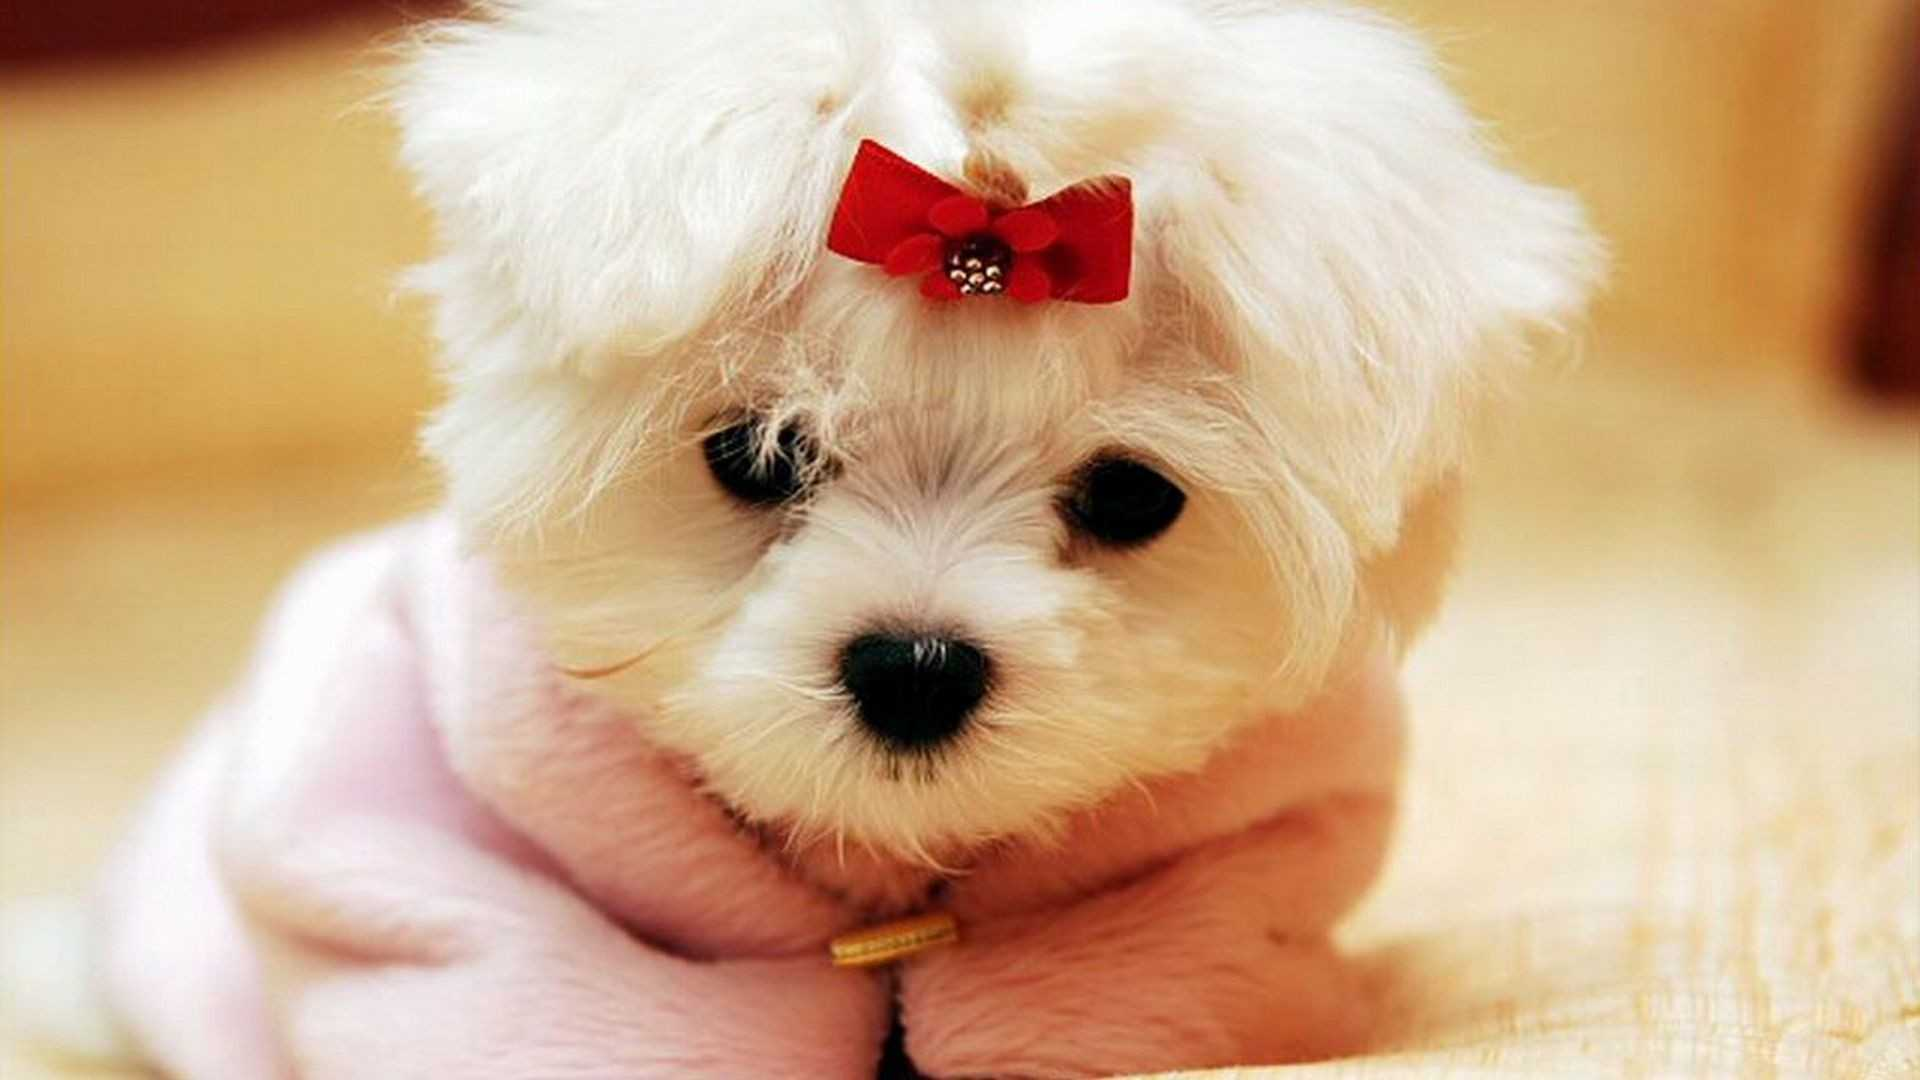 Cute Dogs And Puppies Wallpapers For Mobile Wallpaper Cave